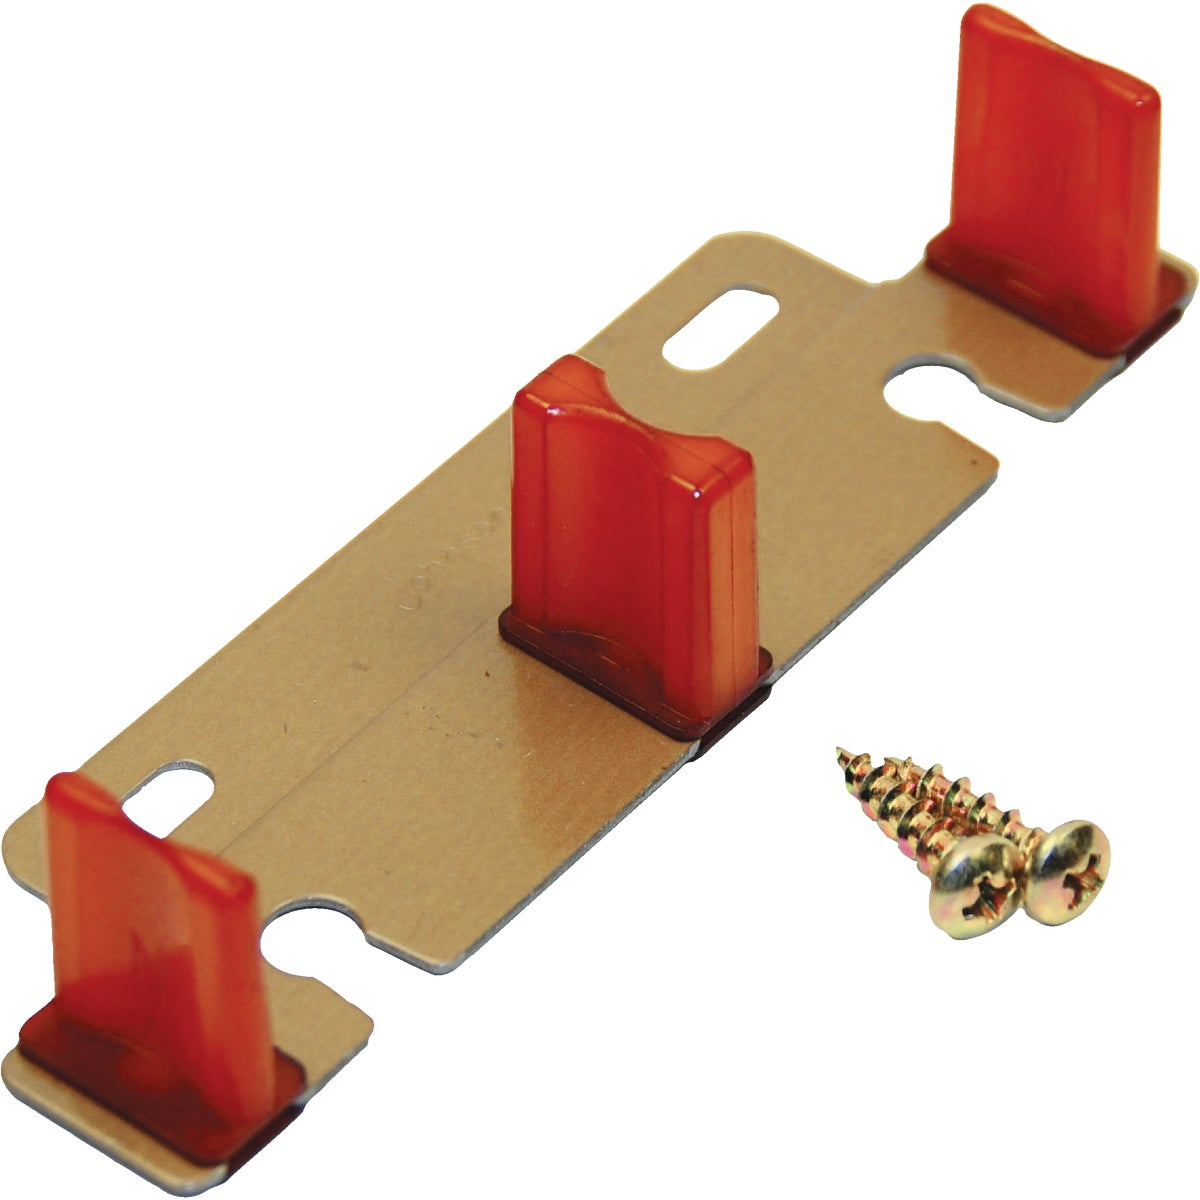 DOOR GUIDE - 2135PPK1 by Johnson Products